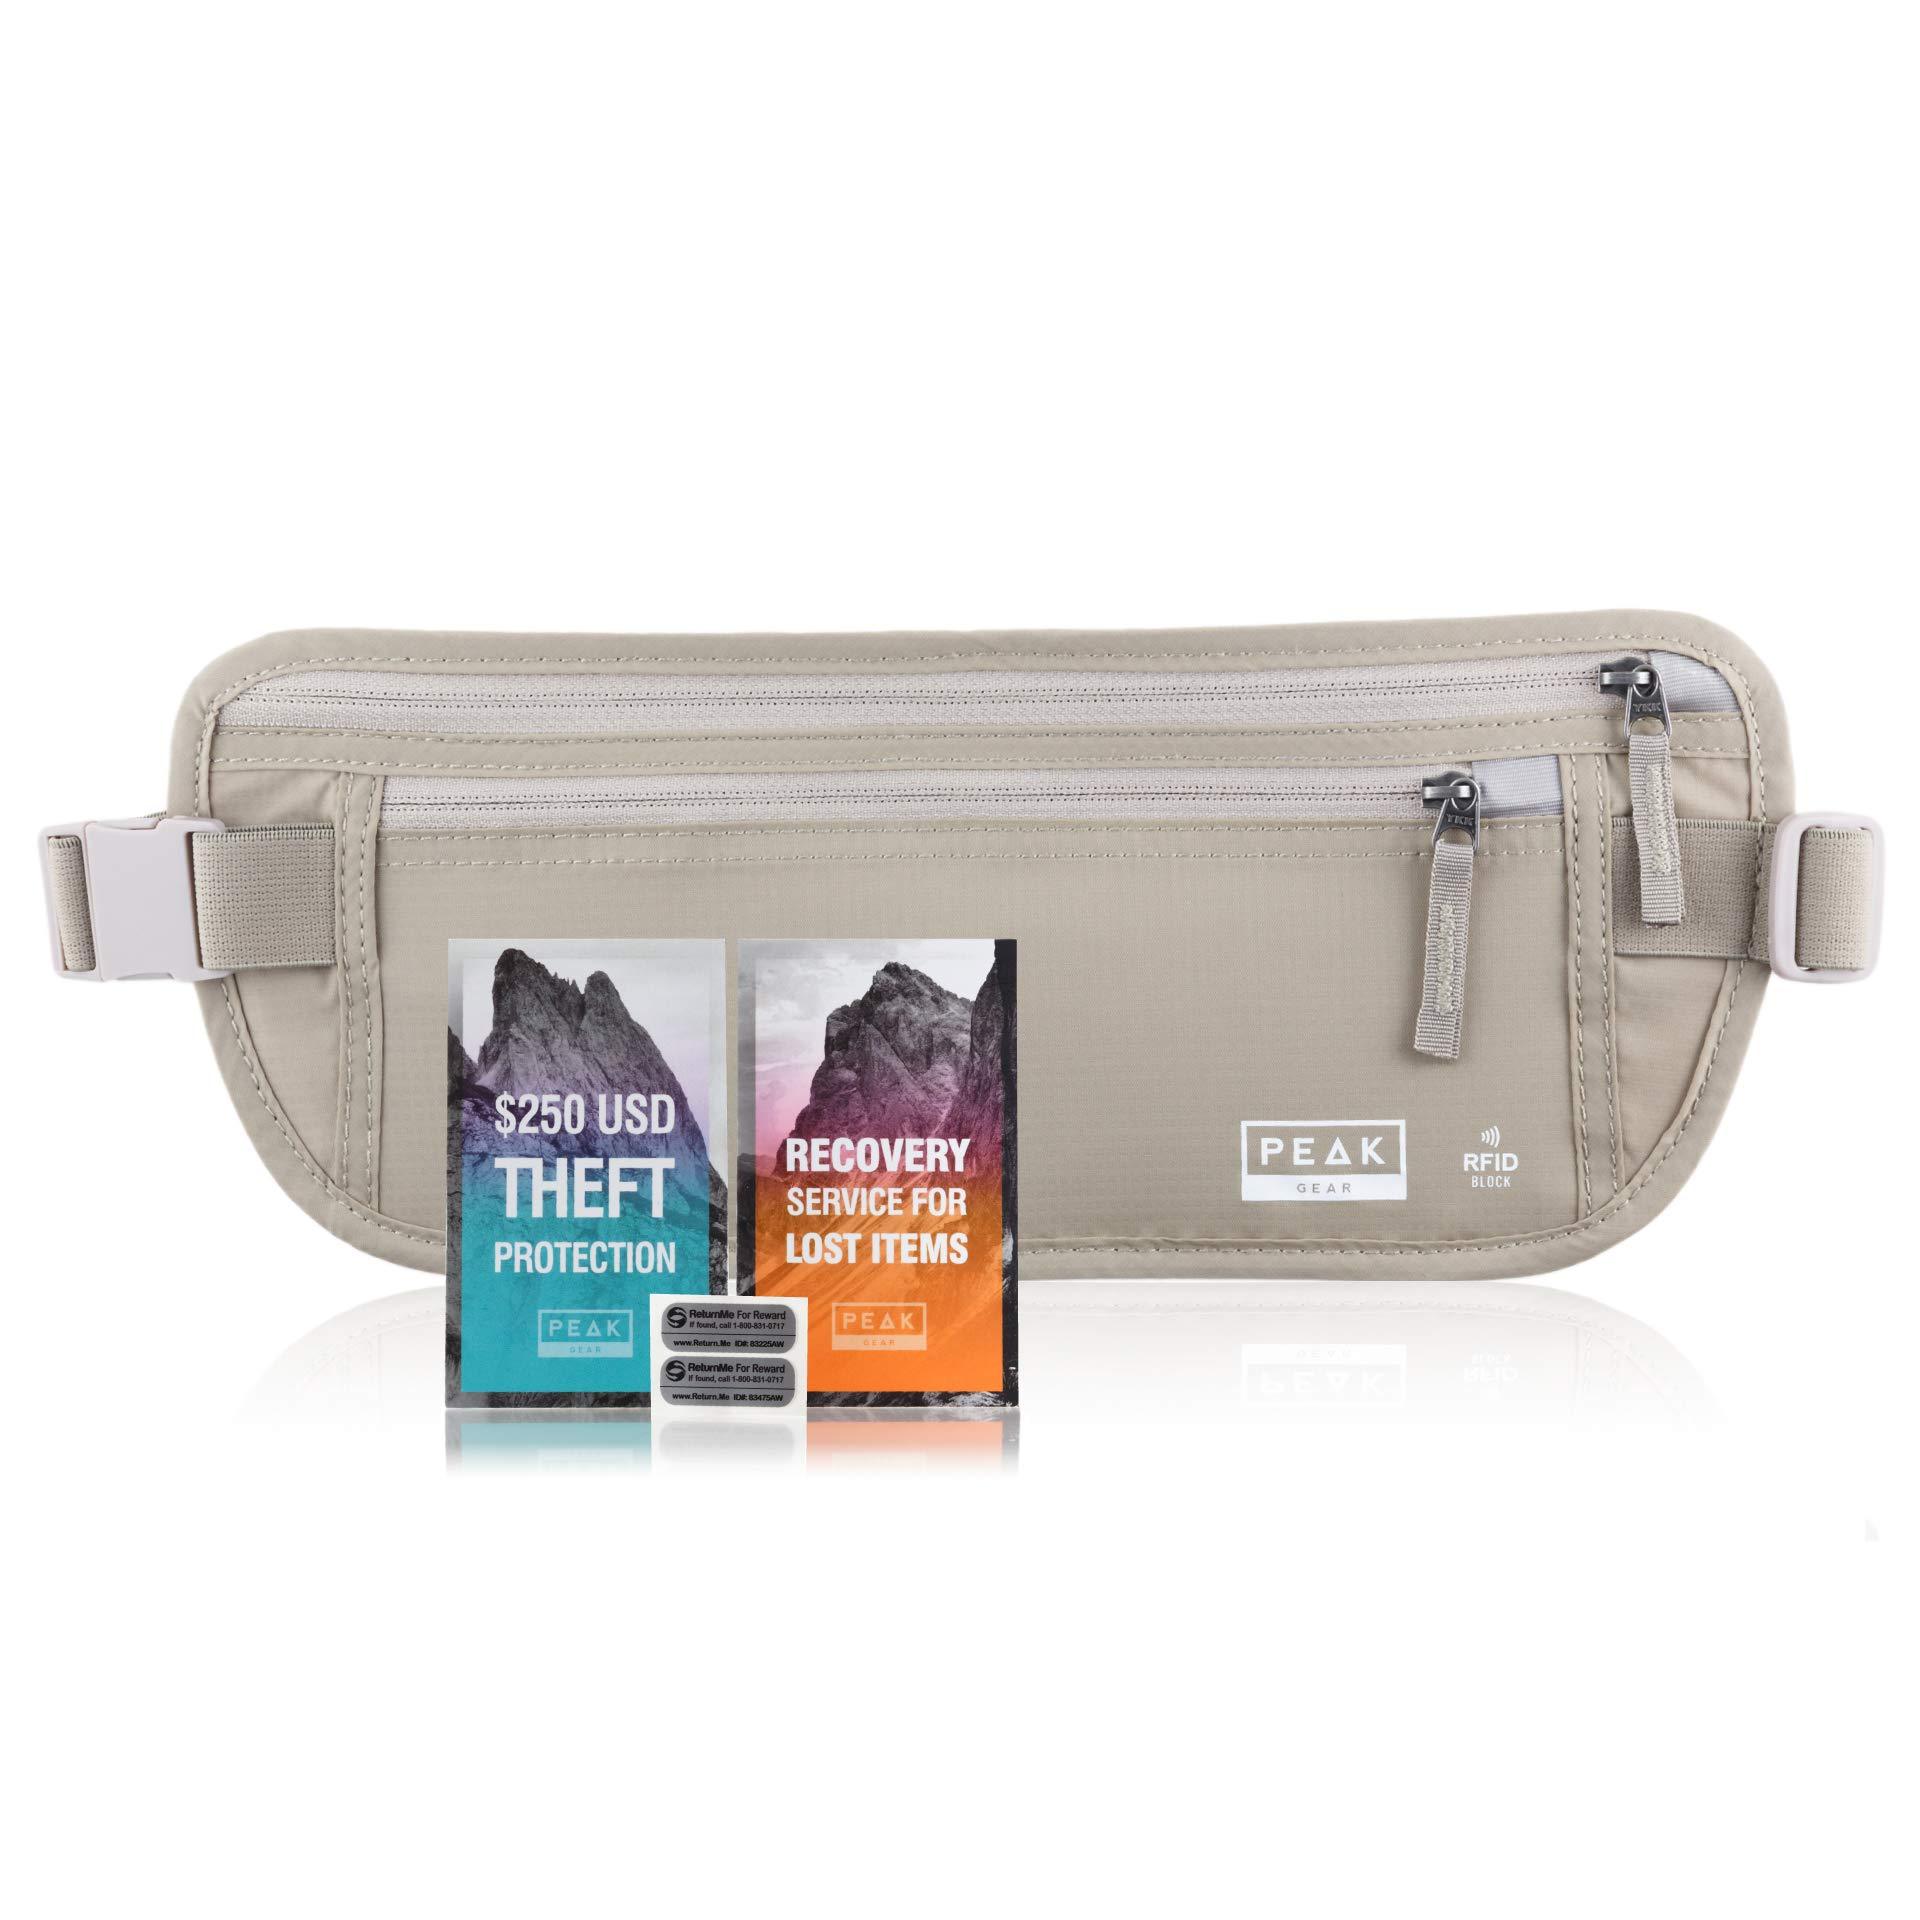 Travel Money Belt with RFID Block - Theft Protection and Global Recovery Tags (Beige REG - fits most) by Peak Gear